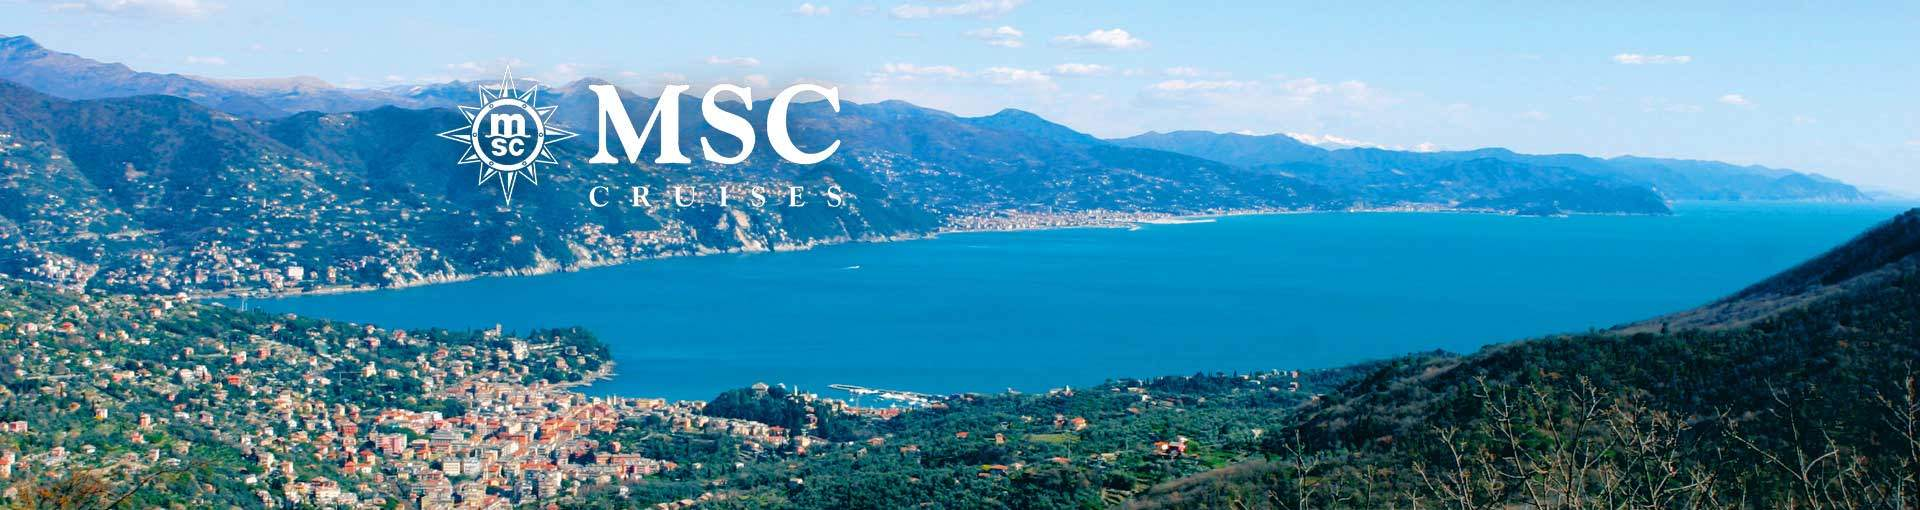 MSC Cruises And Cruise Deals Destinations Ships - Cheap cruises for two